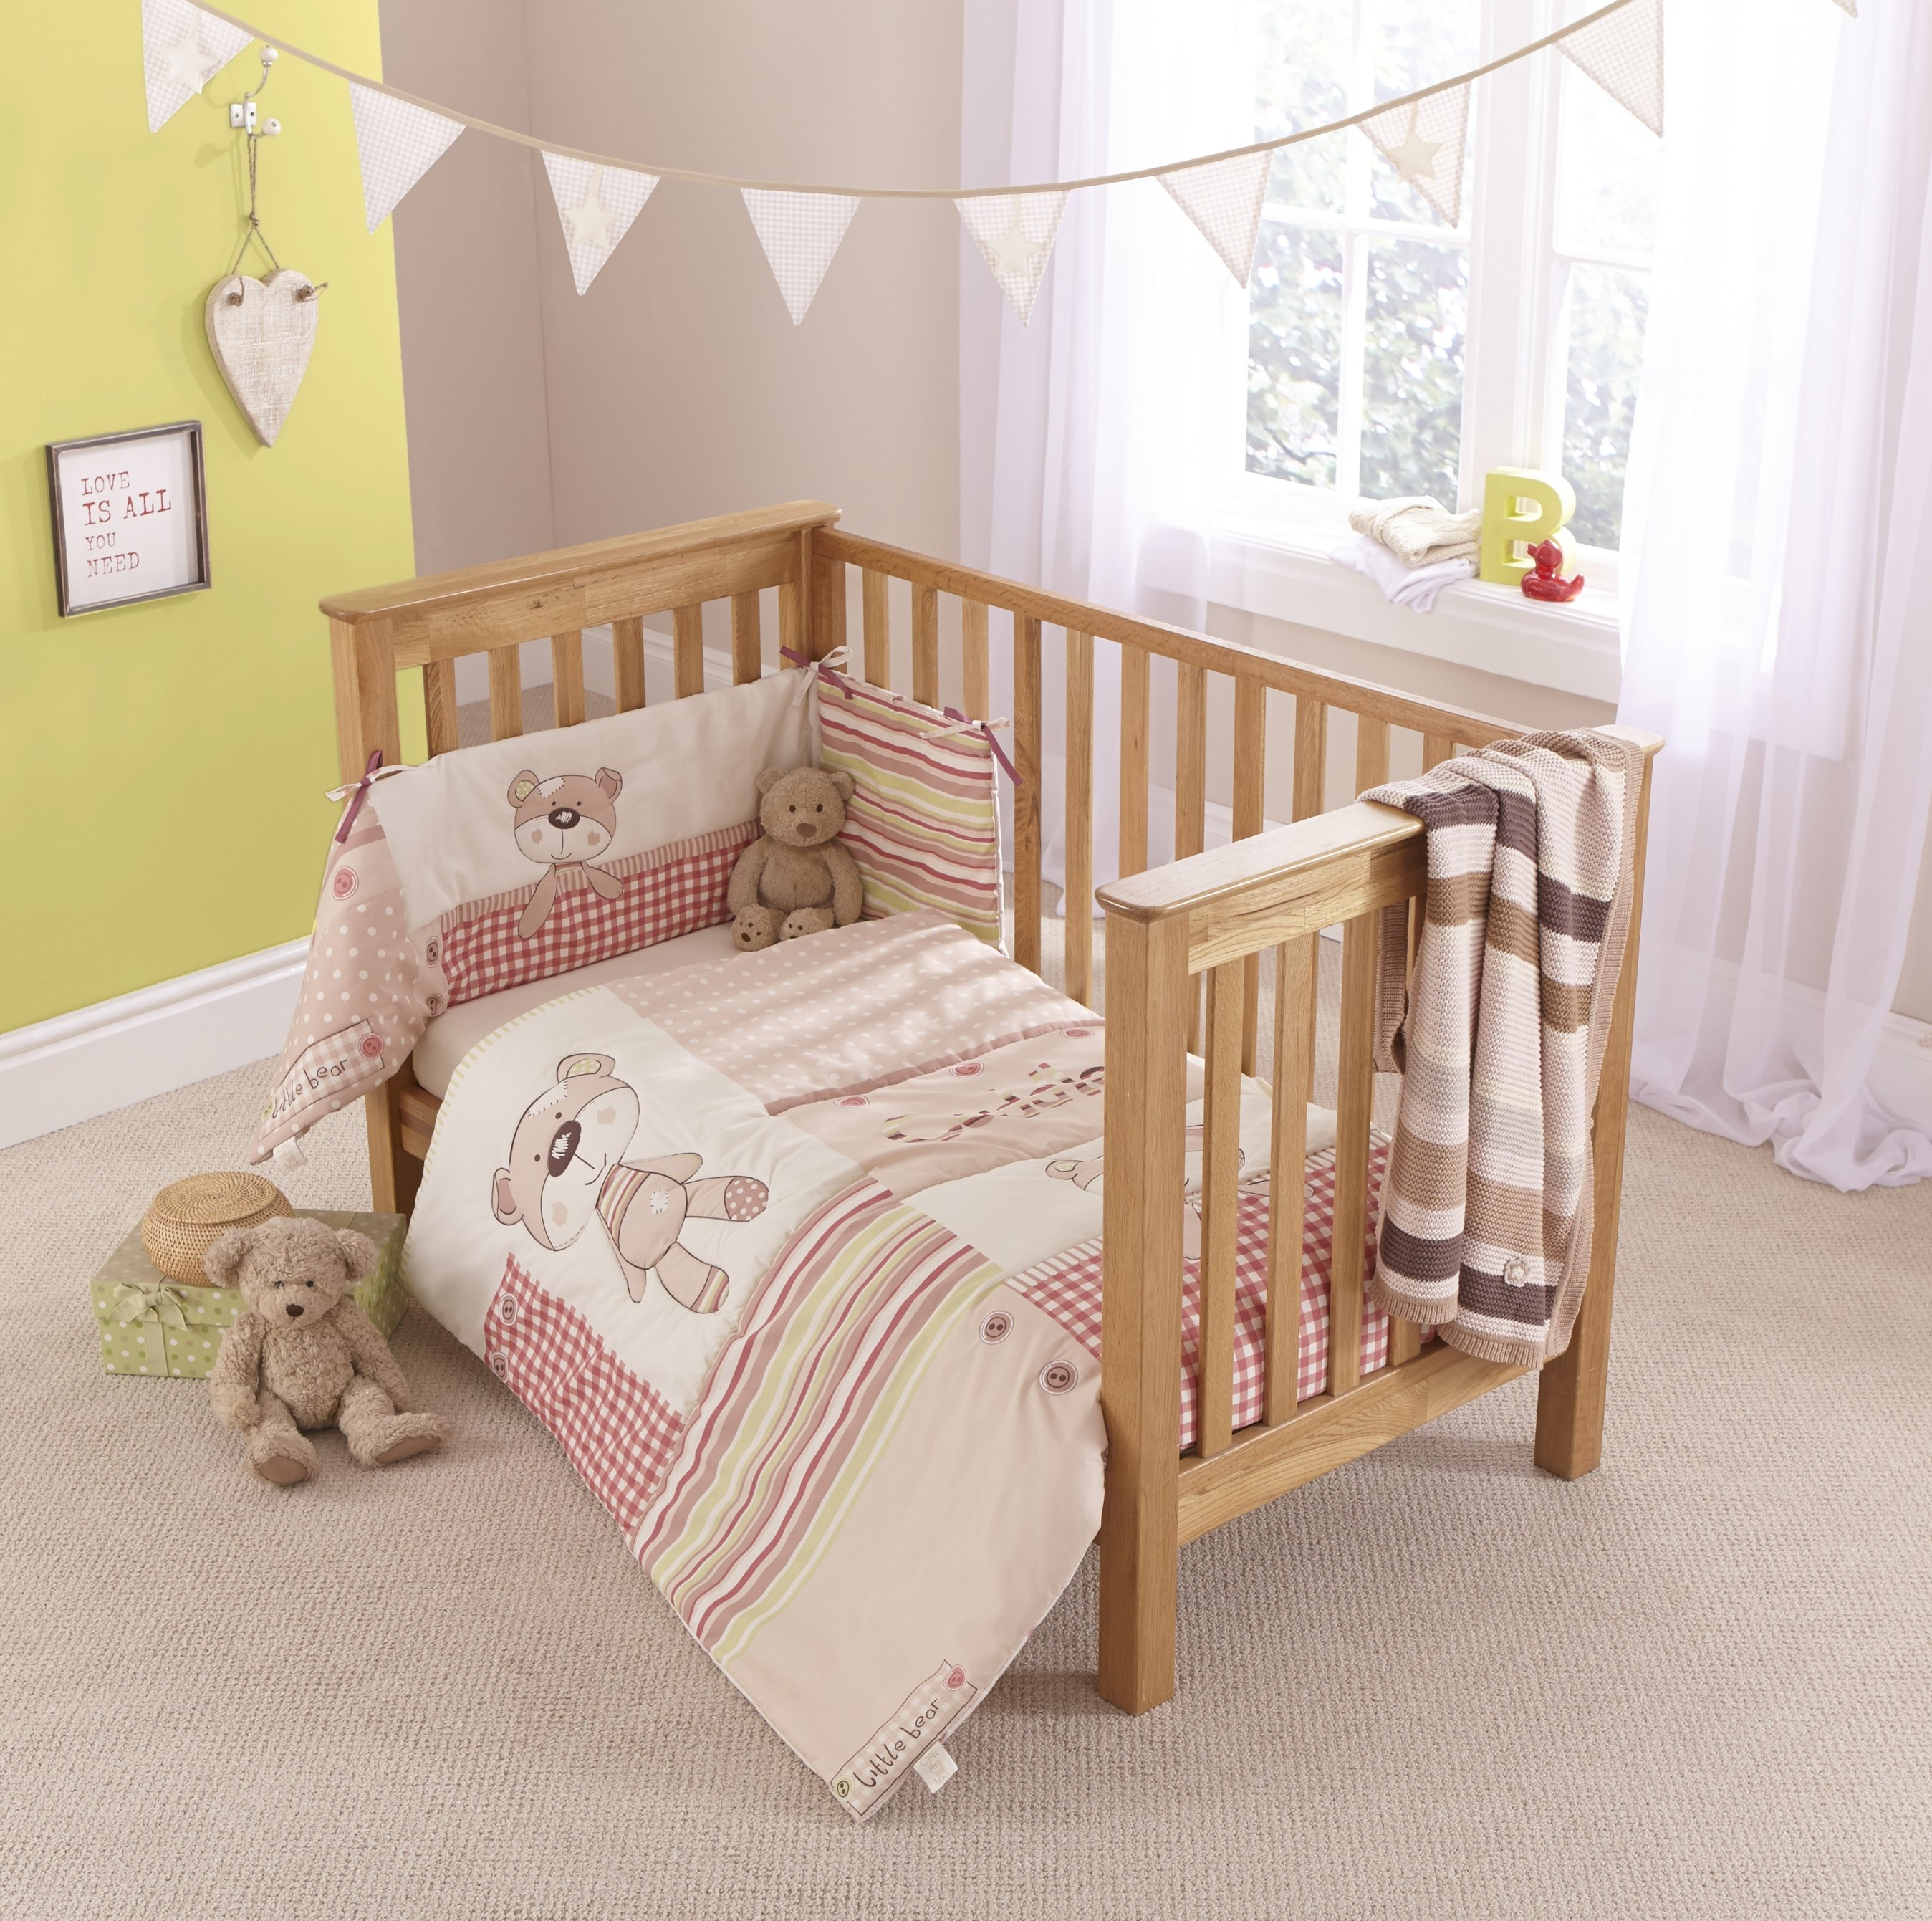 clair de lune little bear cot bedding set732/5946 HEBESHV